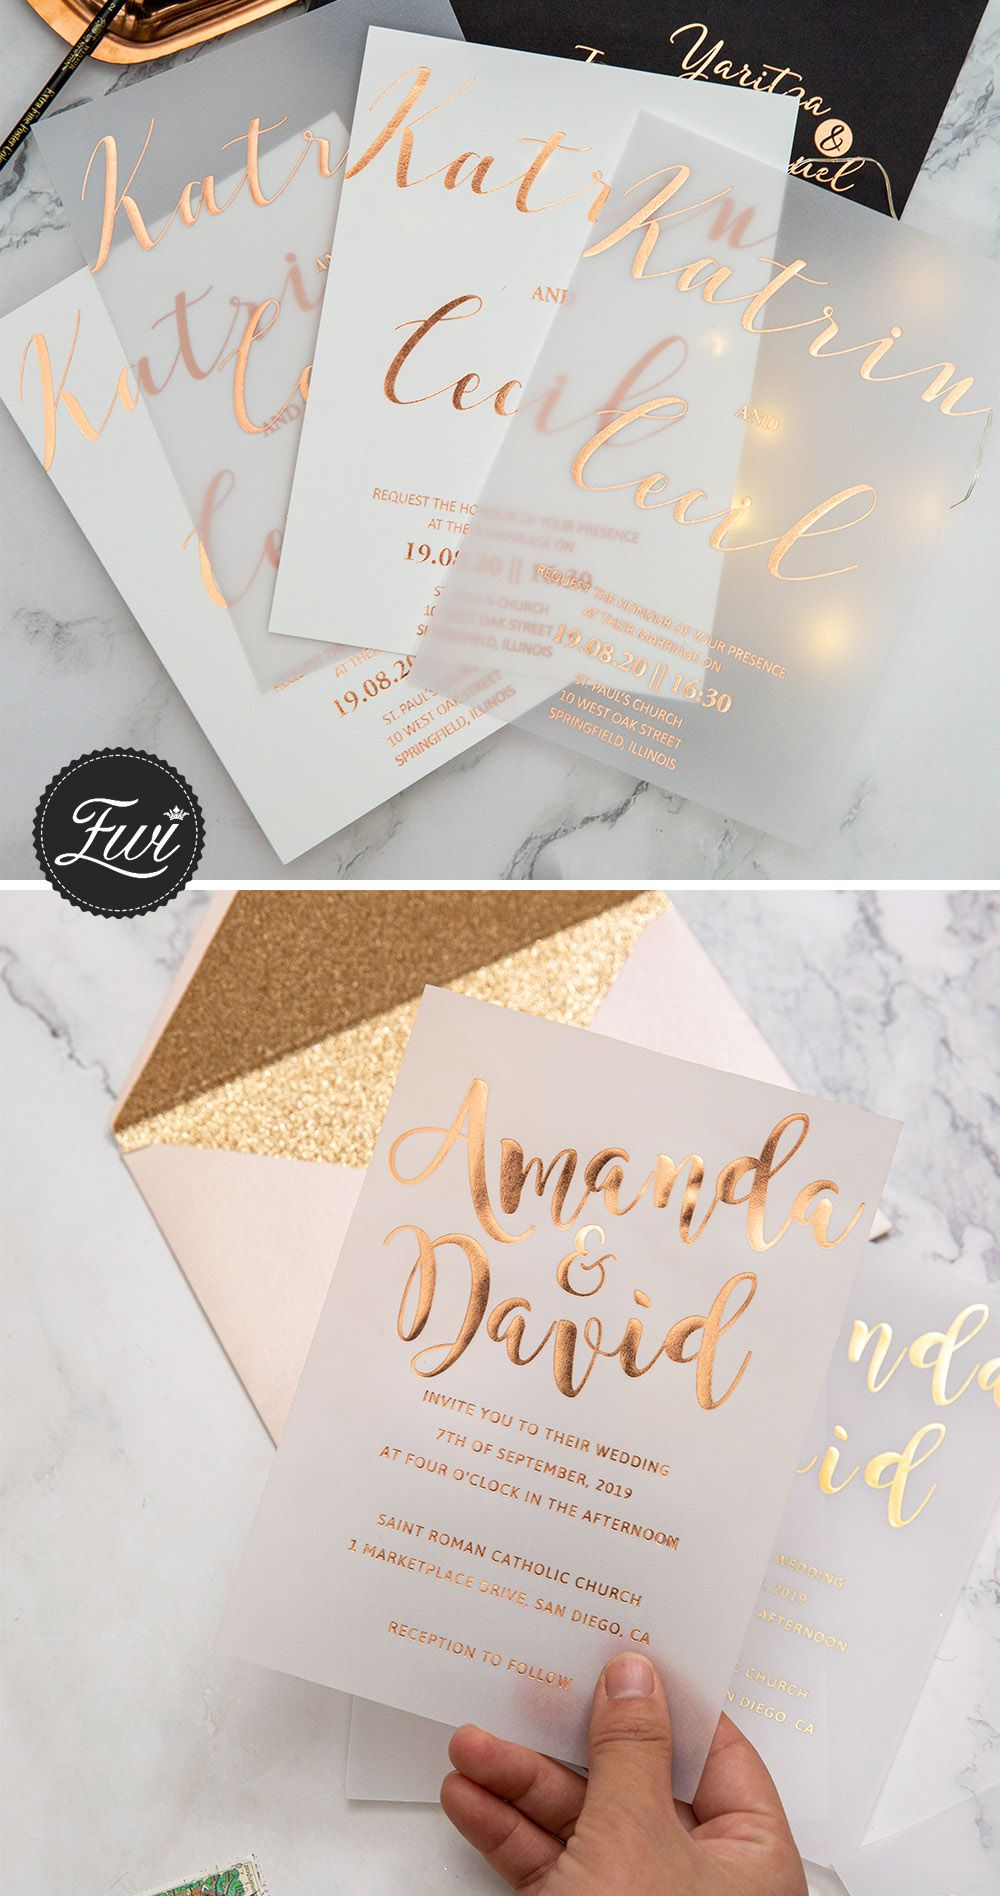 Foil Wedding Invitations Elegantweddinginvites In 2021 Wedding Invitations Wedding Invitation Cards Foil Wedding Invitations